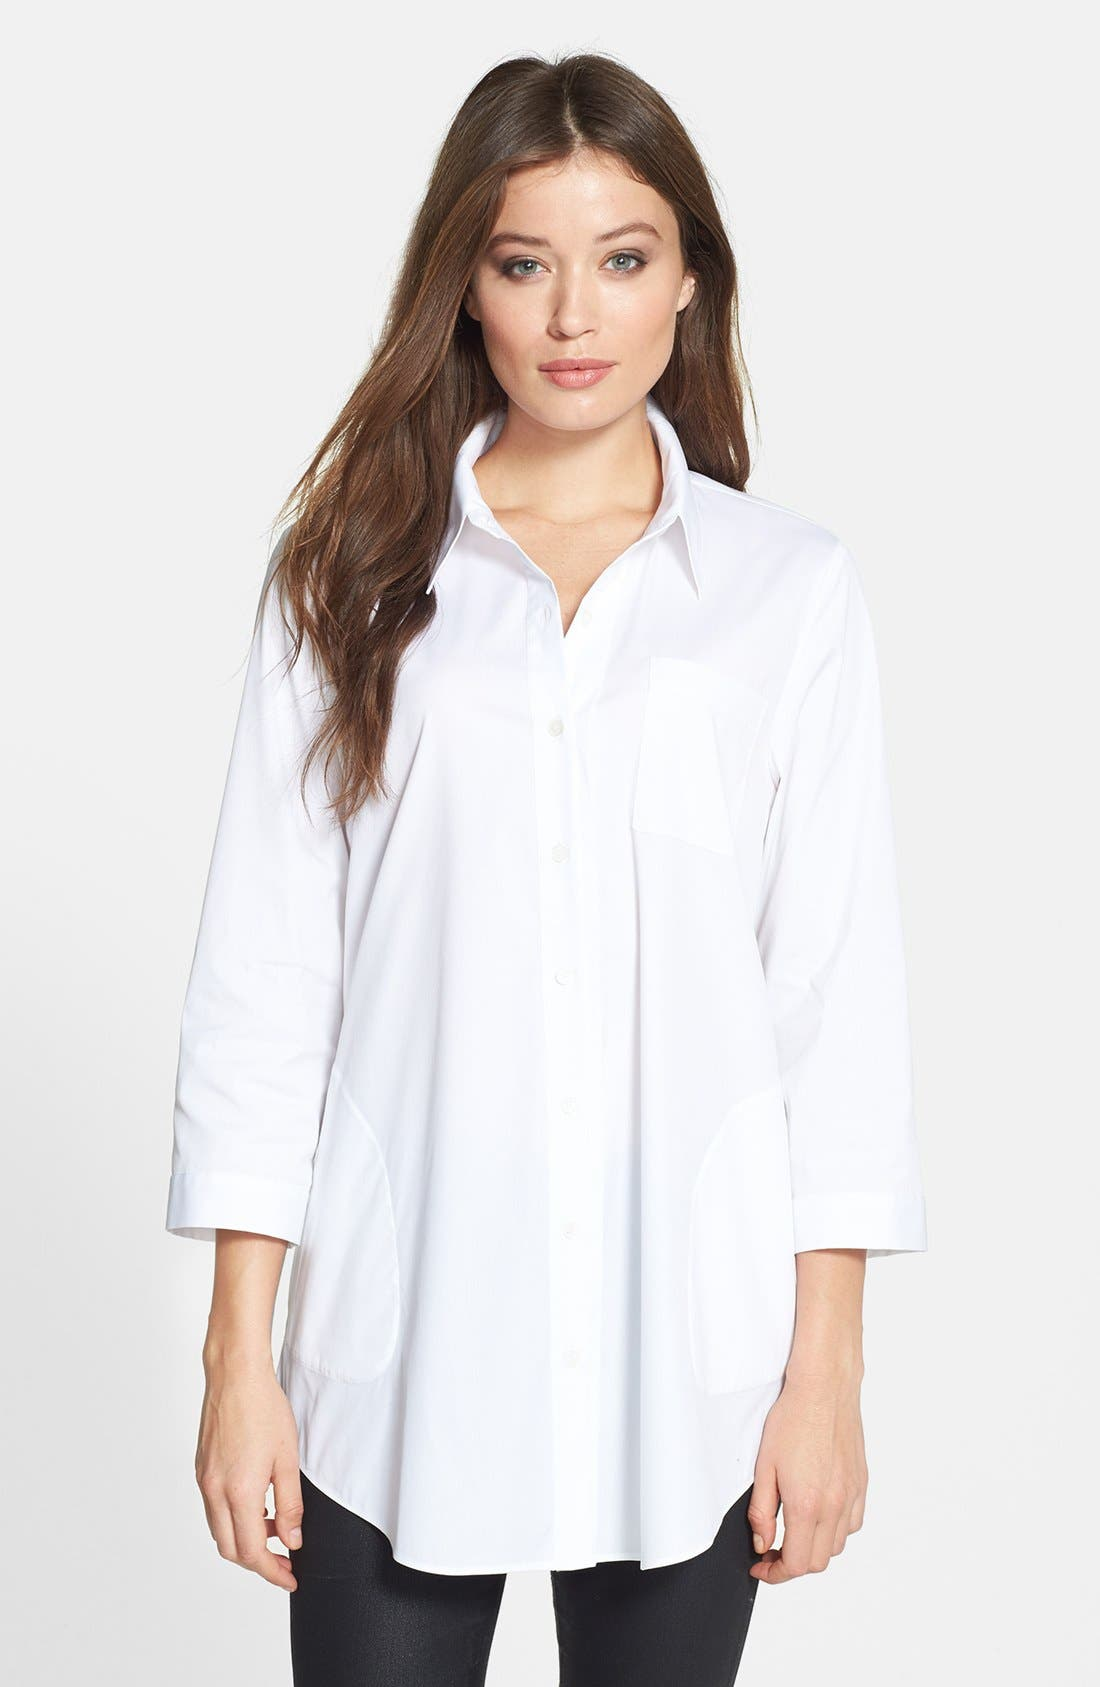 Main Image - Lafayette 148 New York 'Tierny - Excursion Stretch' Tunic Shirt